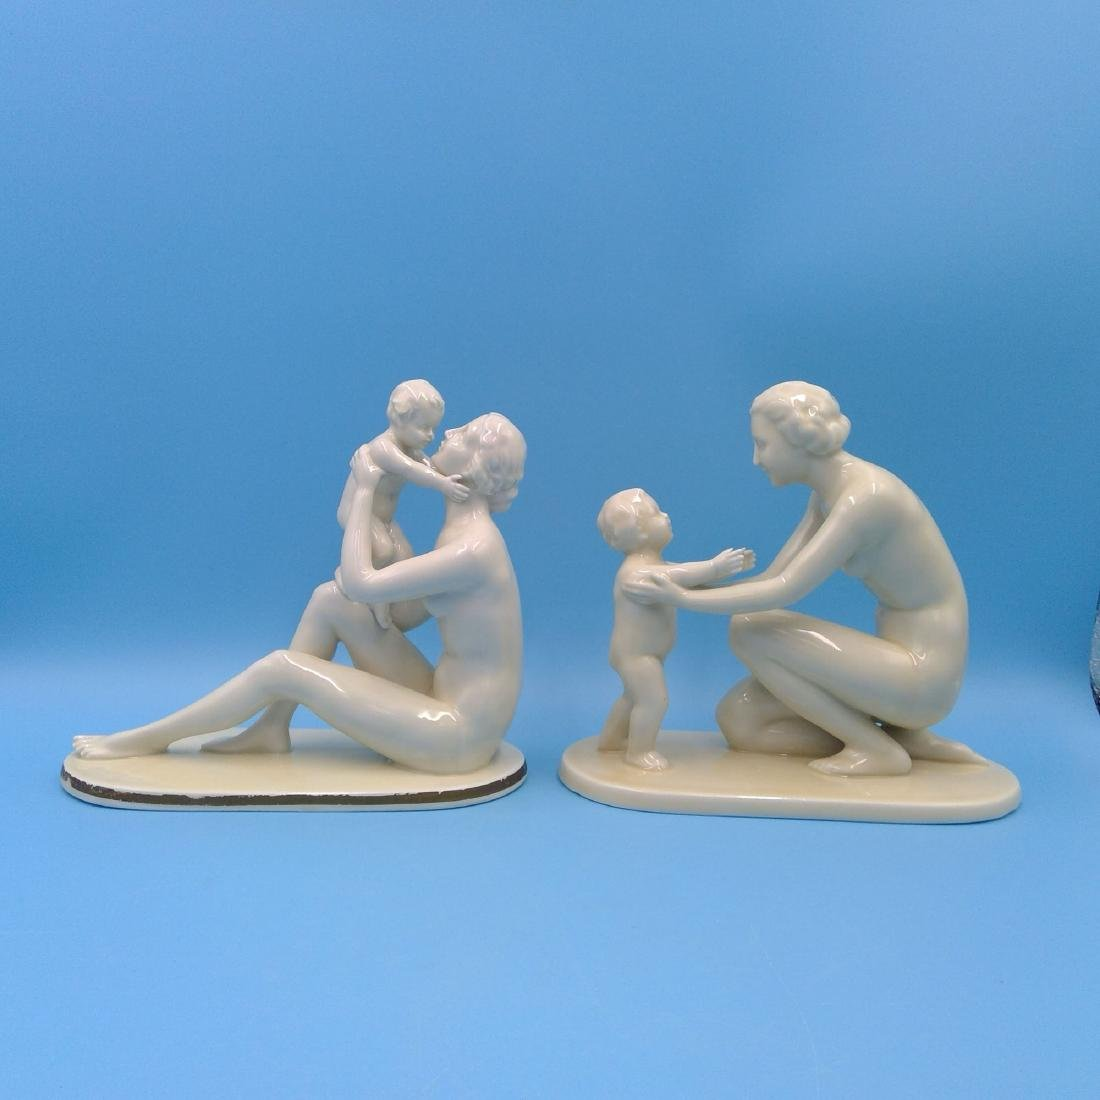 GROUP OF 2 NEUTETTAU PORCELAIN FIGURINES MOTHER